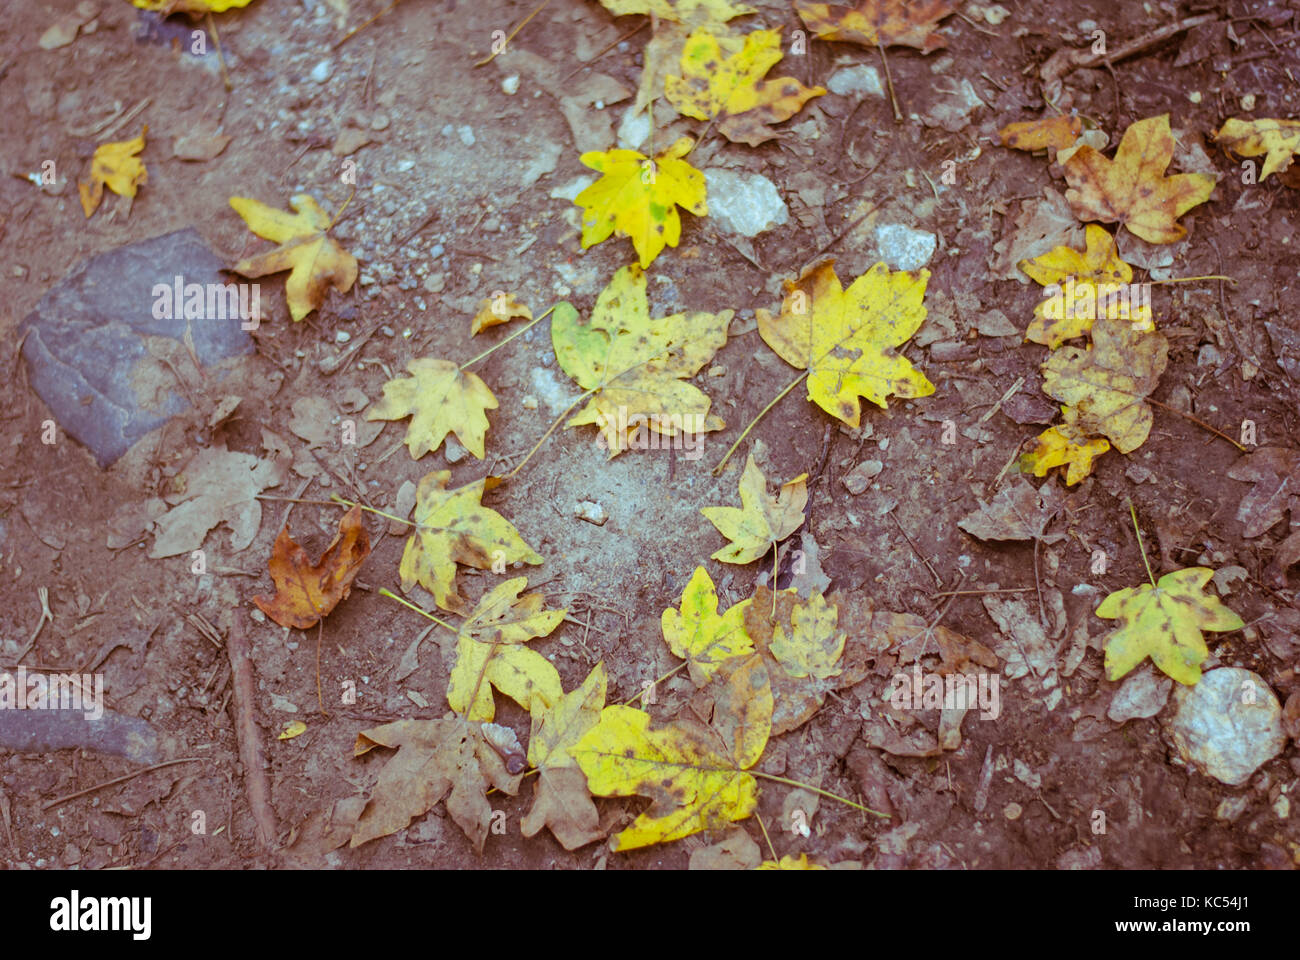 Autumn leaves fallen on the ground, autumn city park - Stock Image